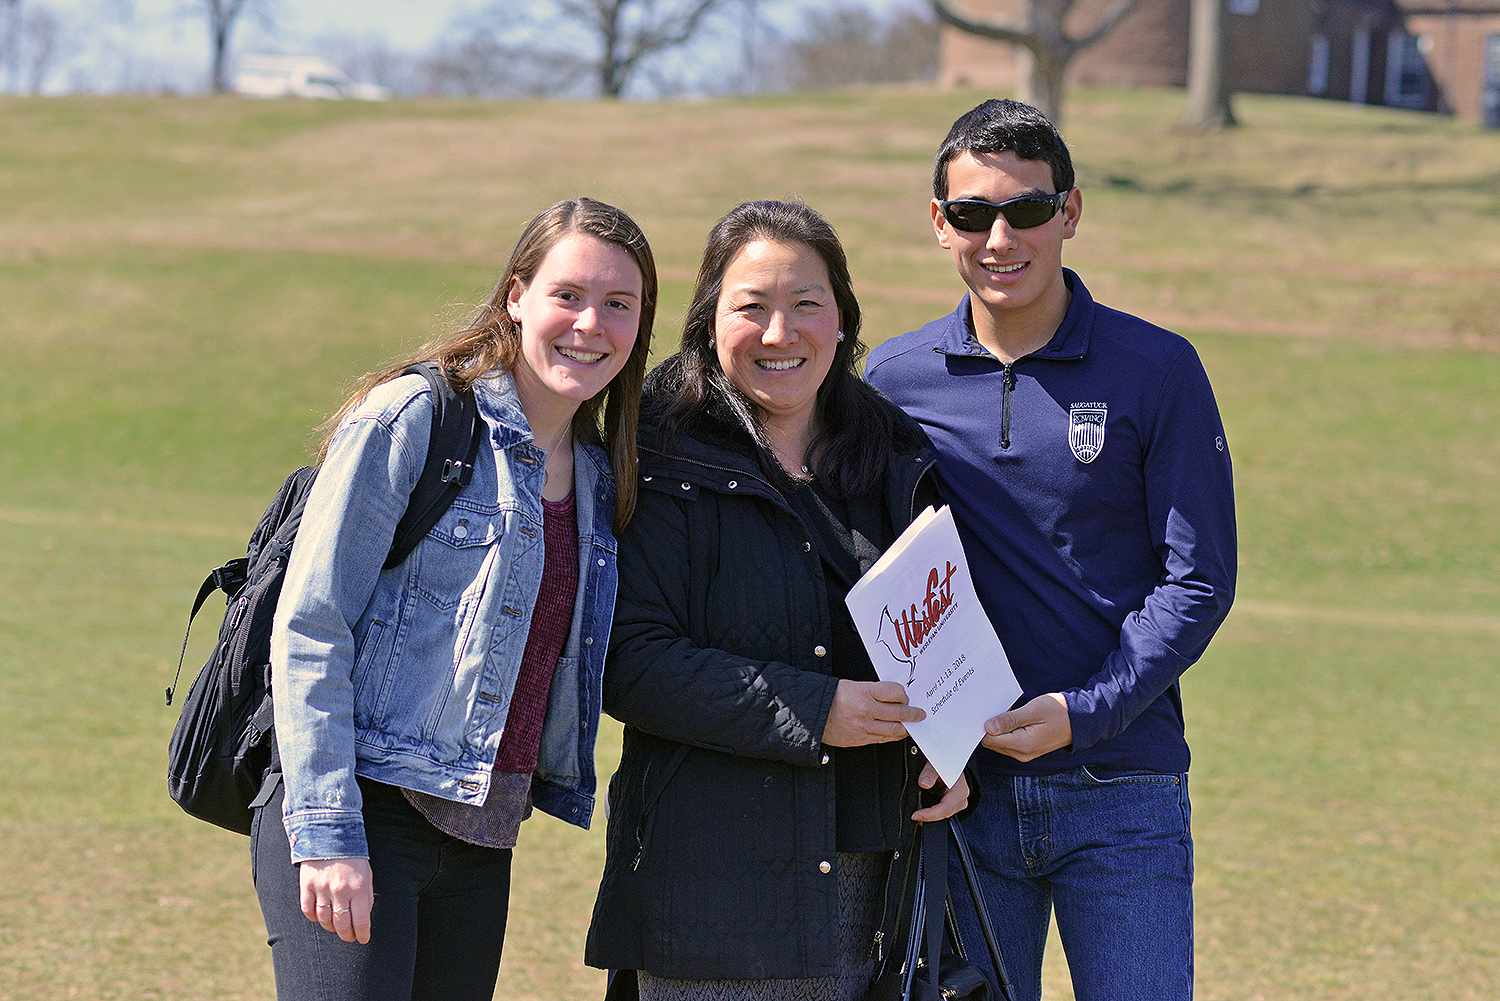 Hundreds of admitted Class of 2022 students and their families attended WesFest April 10-12 on campus. Guests had the opportunity toexperience university life first-hand and explore the diverse opportunities that a Wesleyan education has to offer.